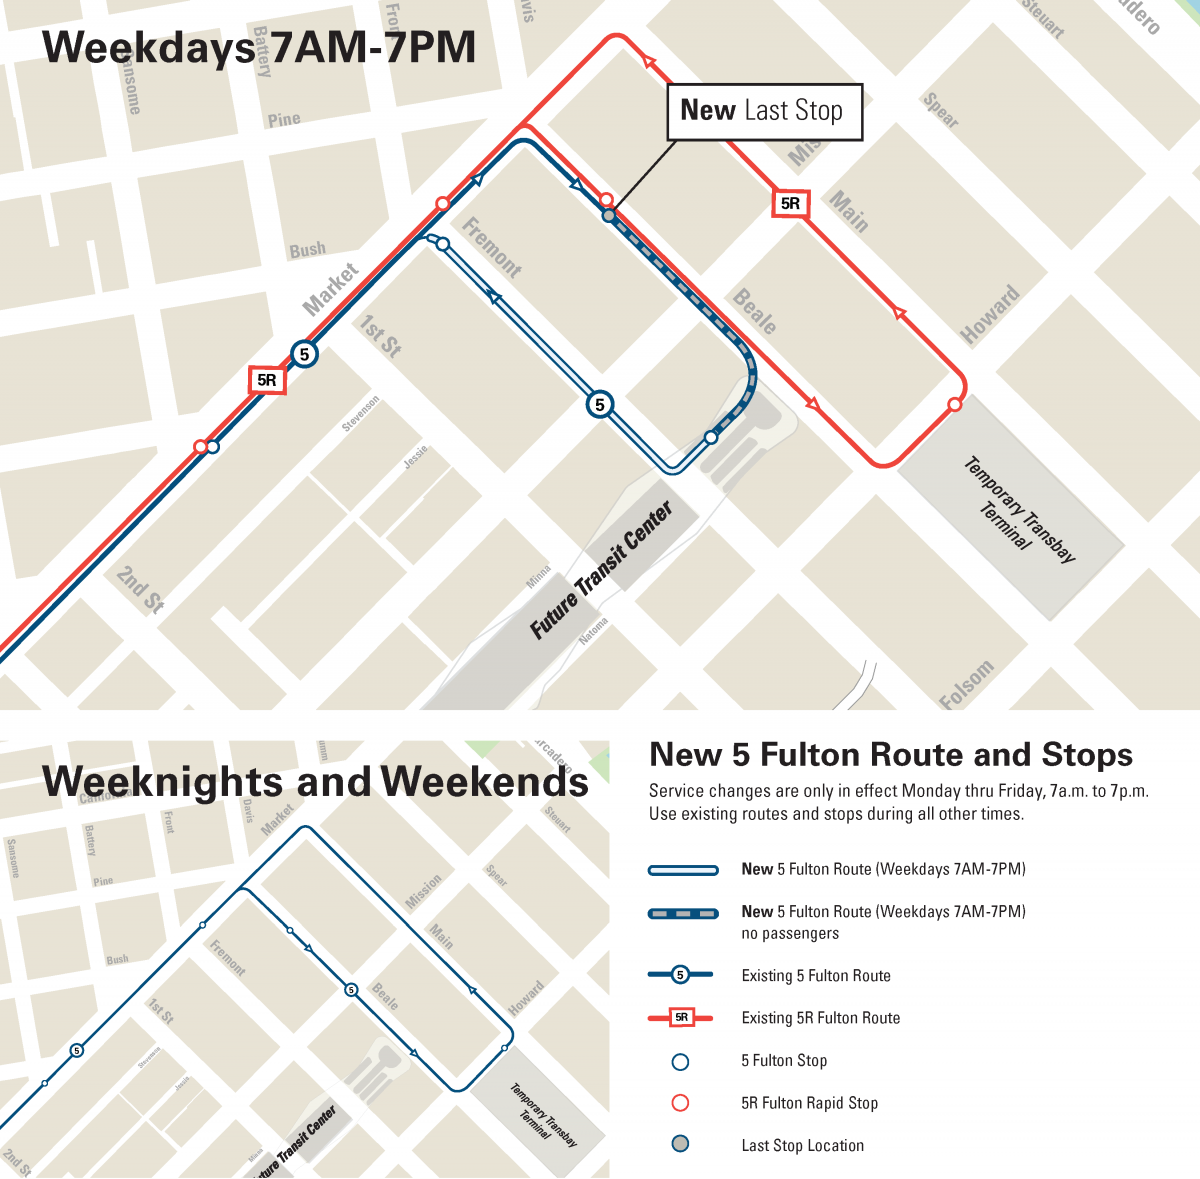 Map of new 5 Fulton Stops for Weekday Service to 6th Ave